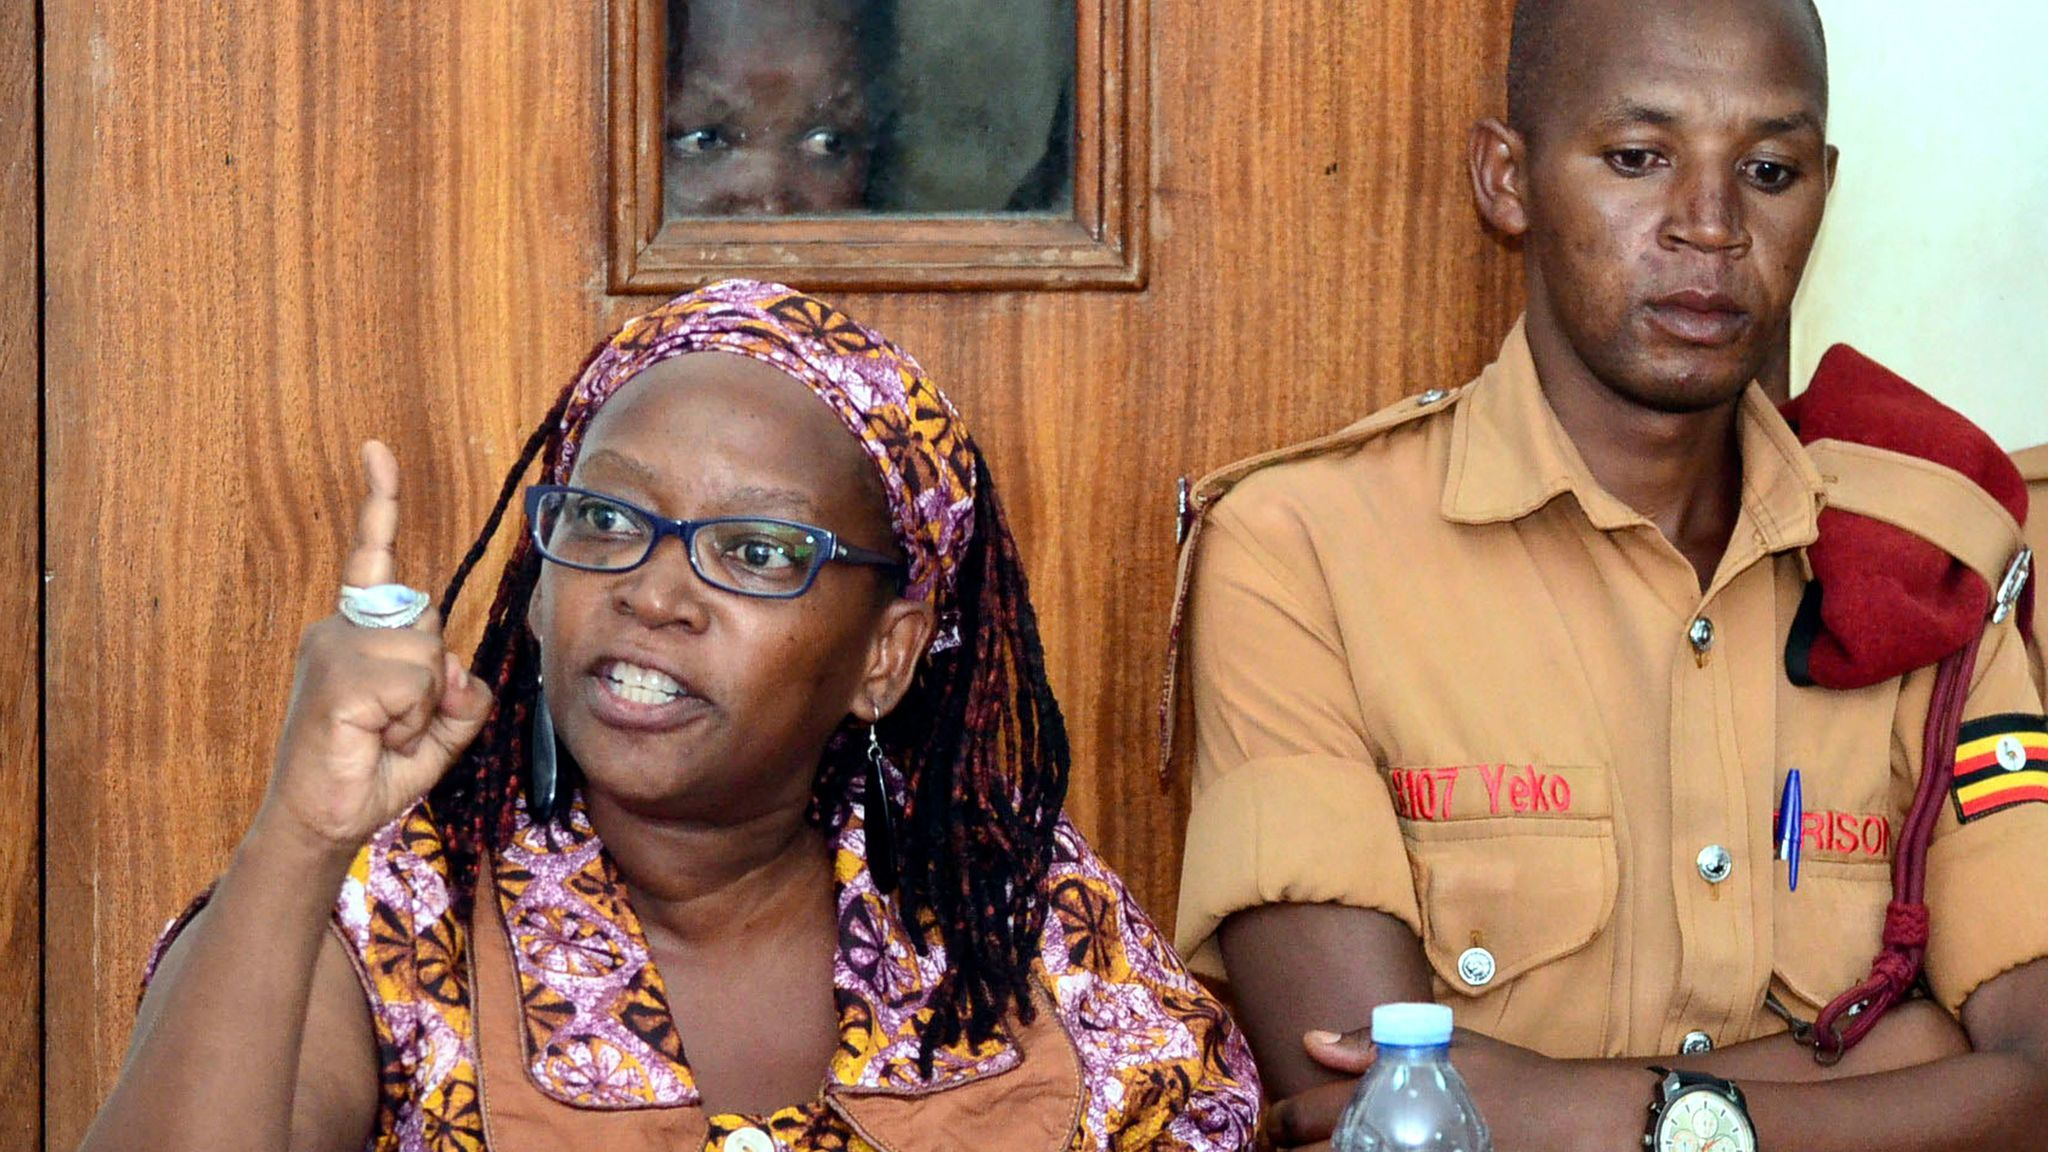 Ugandan academic and activist Stella Nyanzi appears in court in April, charged with insulting the president and his wife in a Facebook post.